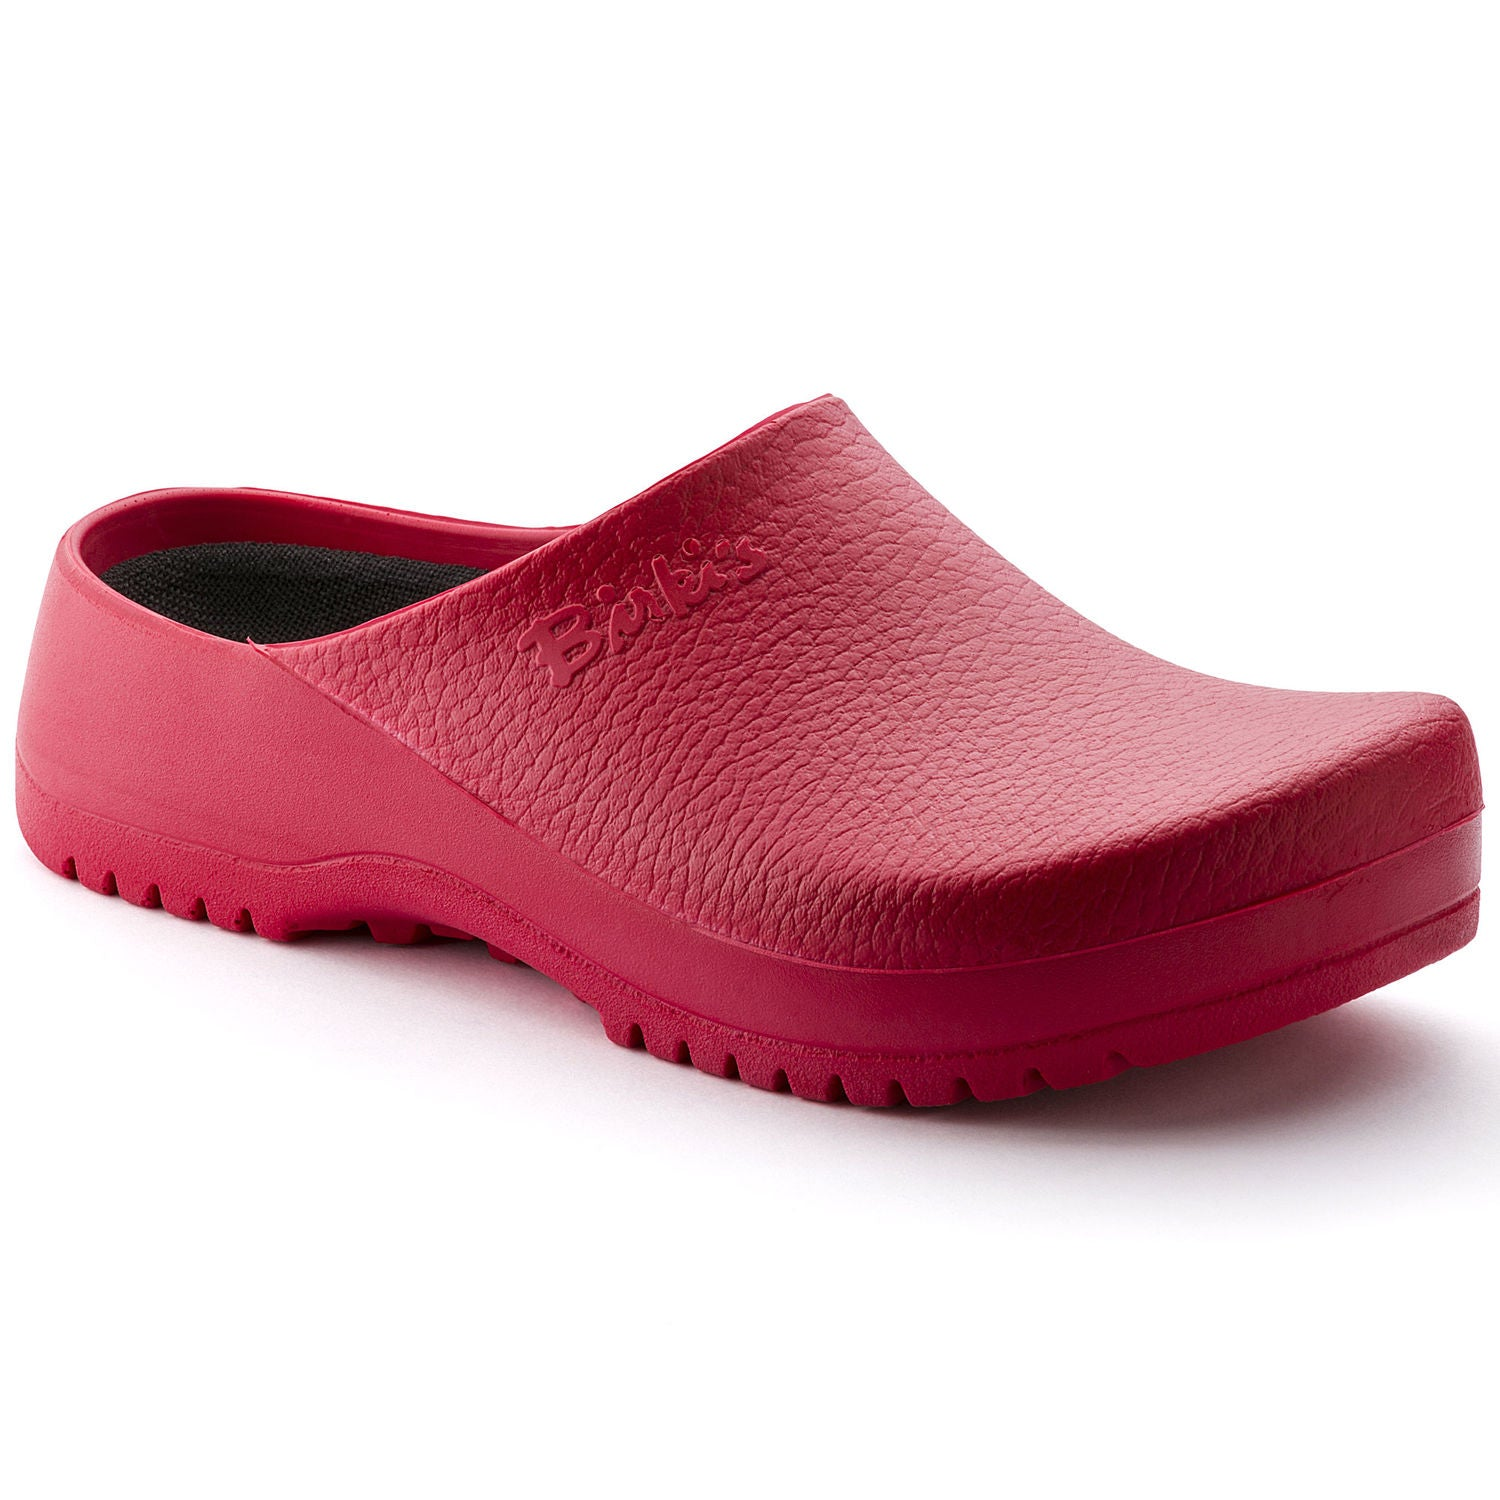 Super-Birki Alpro-foam - Red